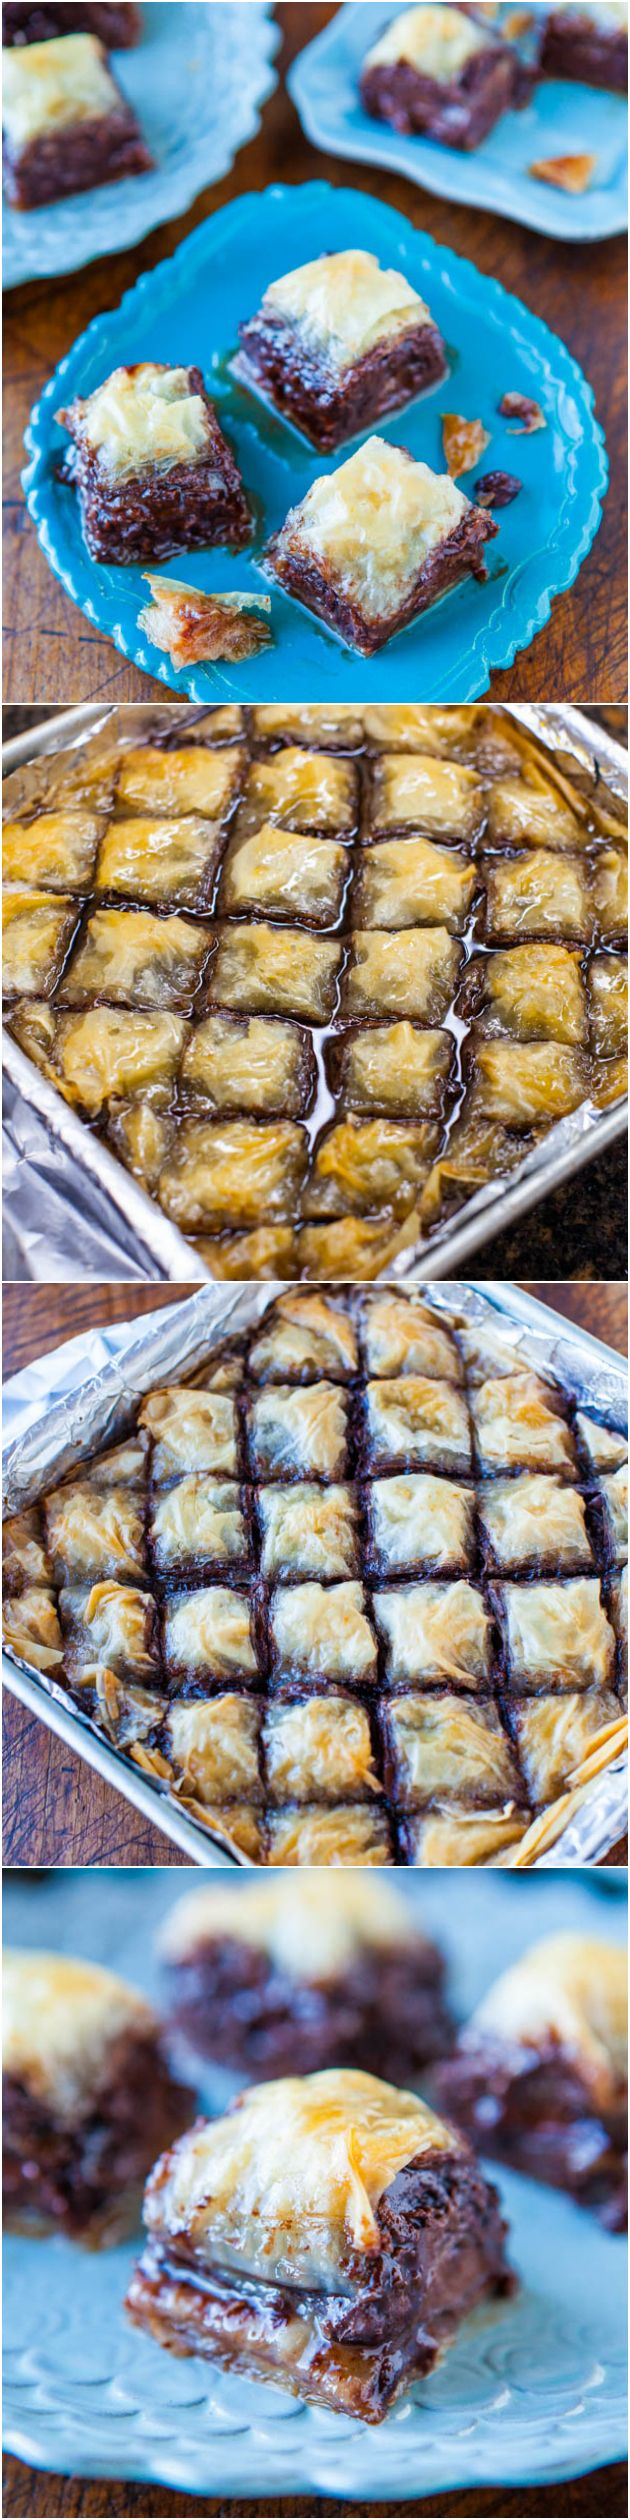 Nutella Chocolate Chip Baklava Recipe ~ This version is loaded with Nutella... rich, indulgent, comforting!